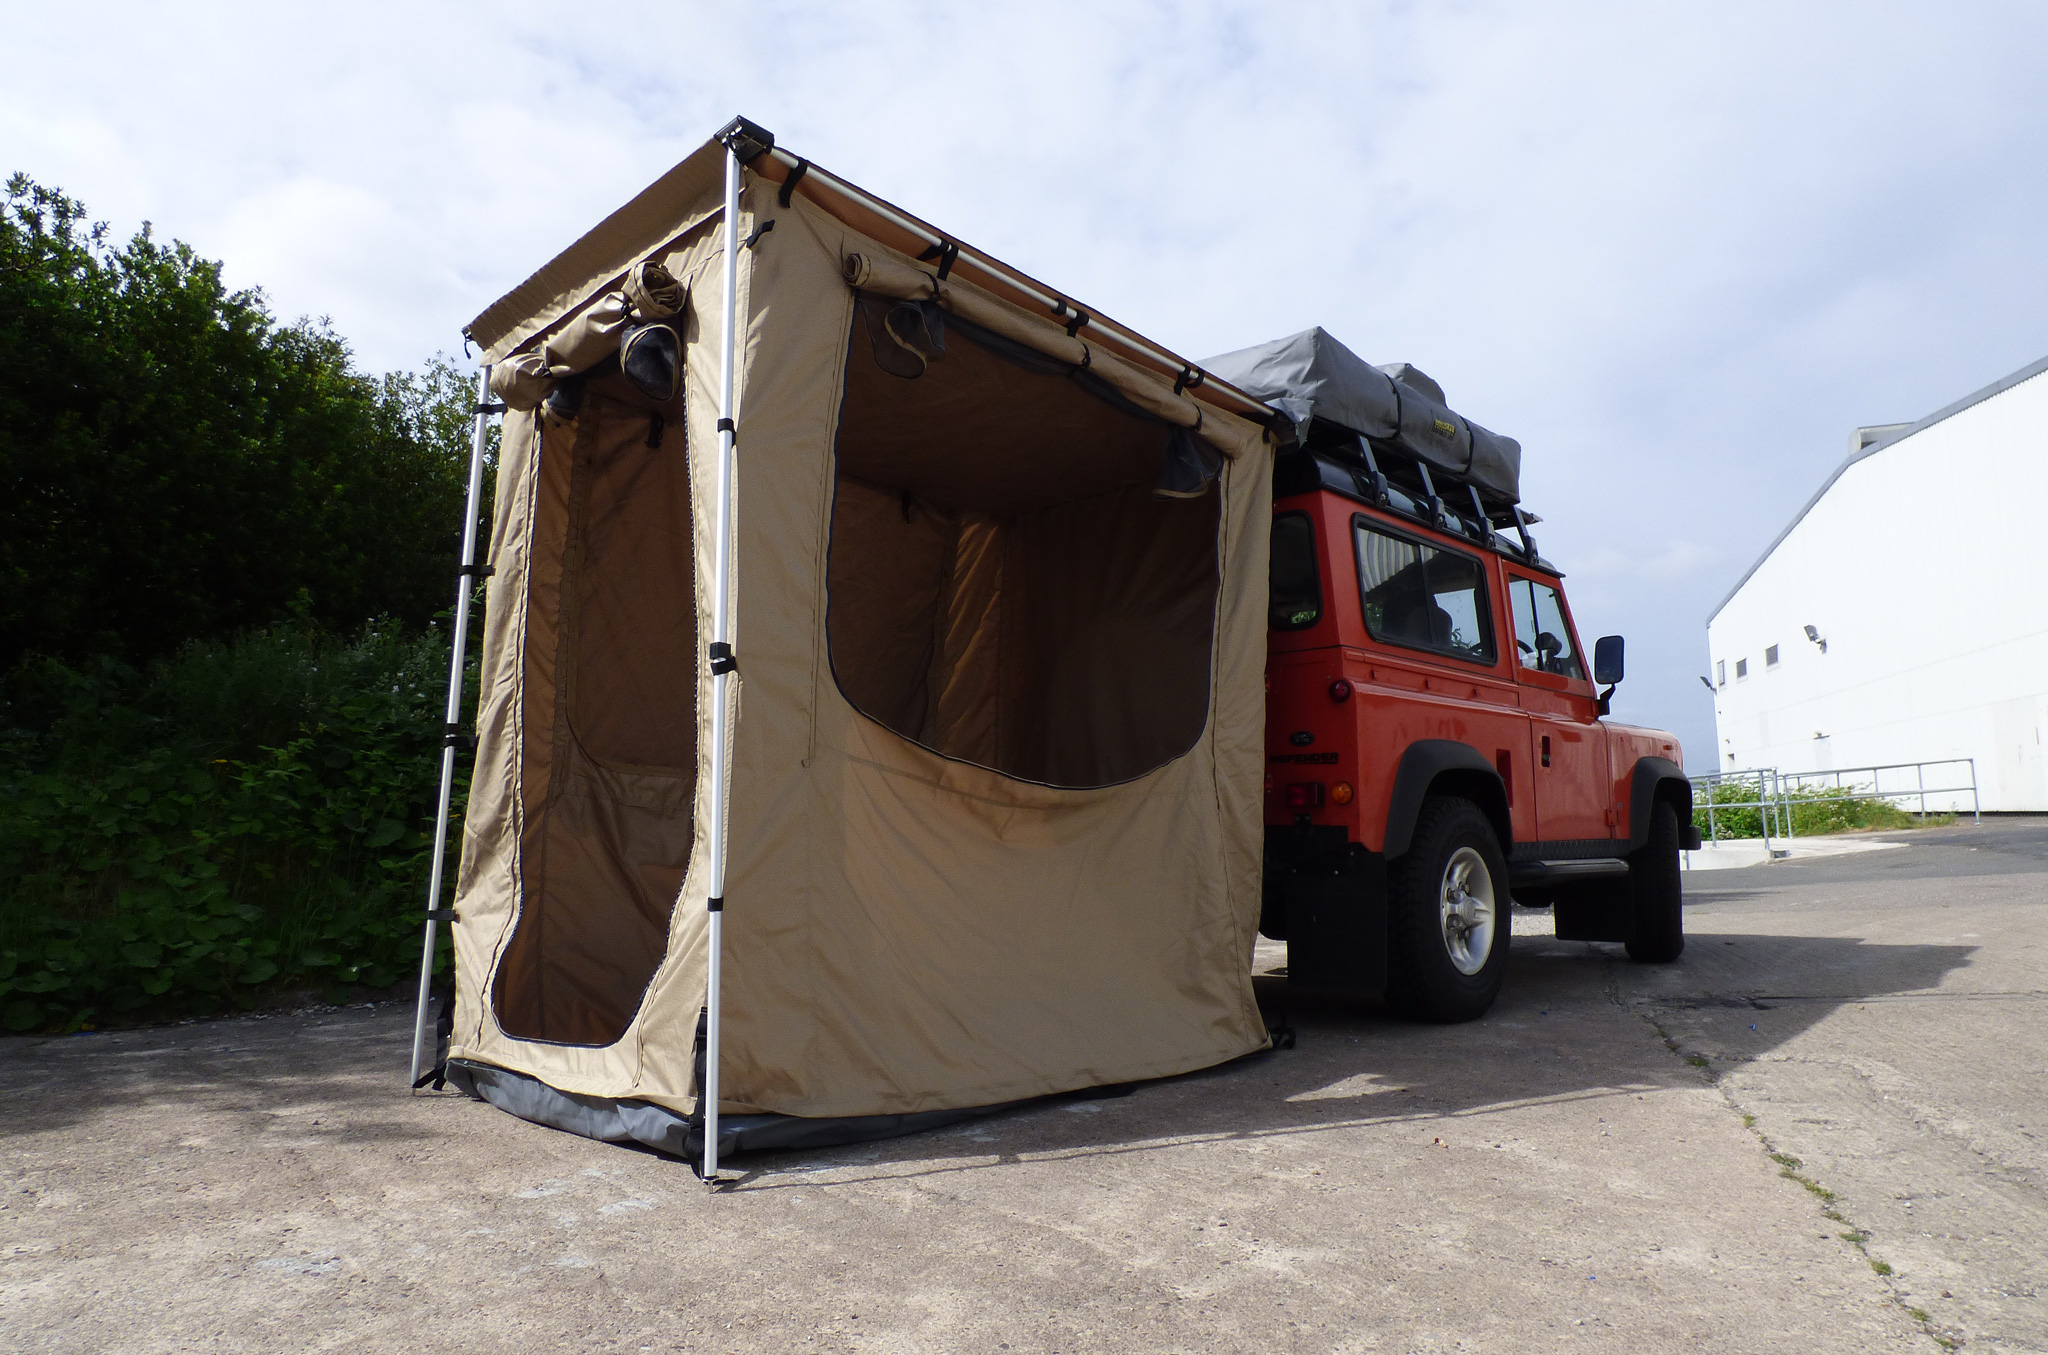 Expedition Awning Outdoor Tent For 4x4s Vans And